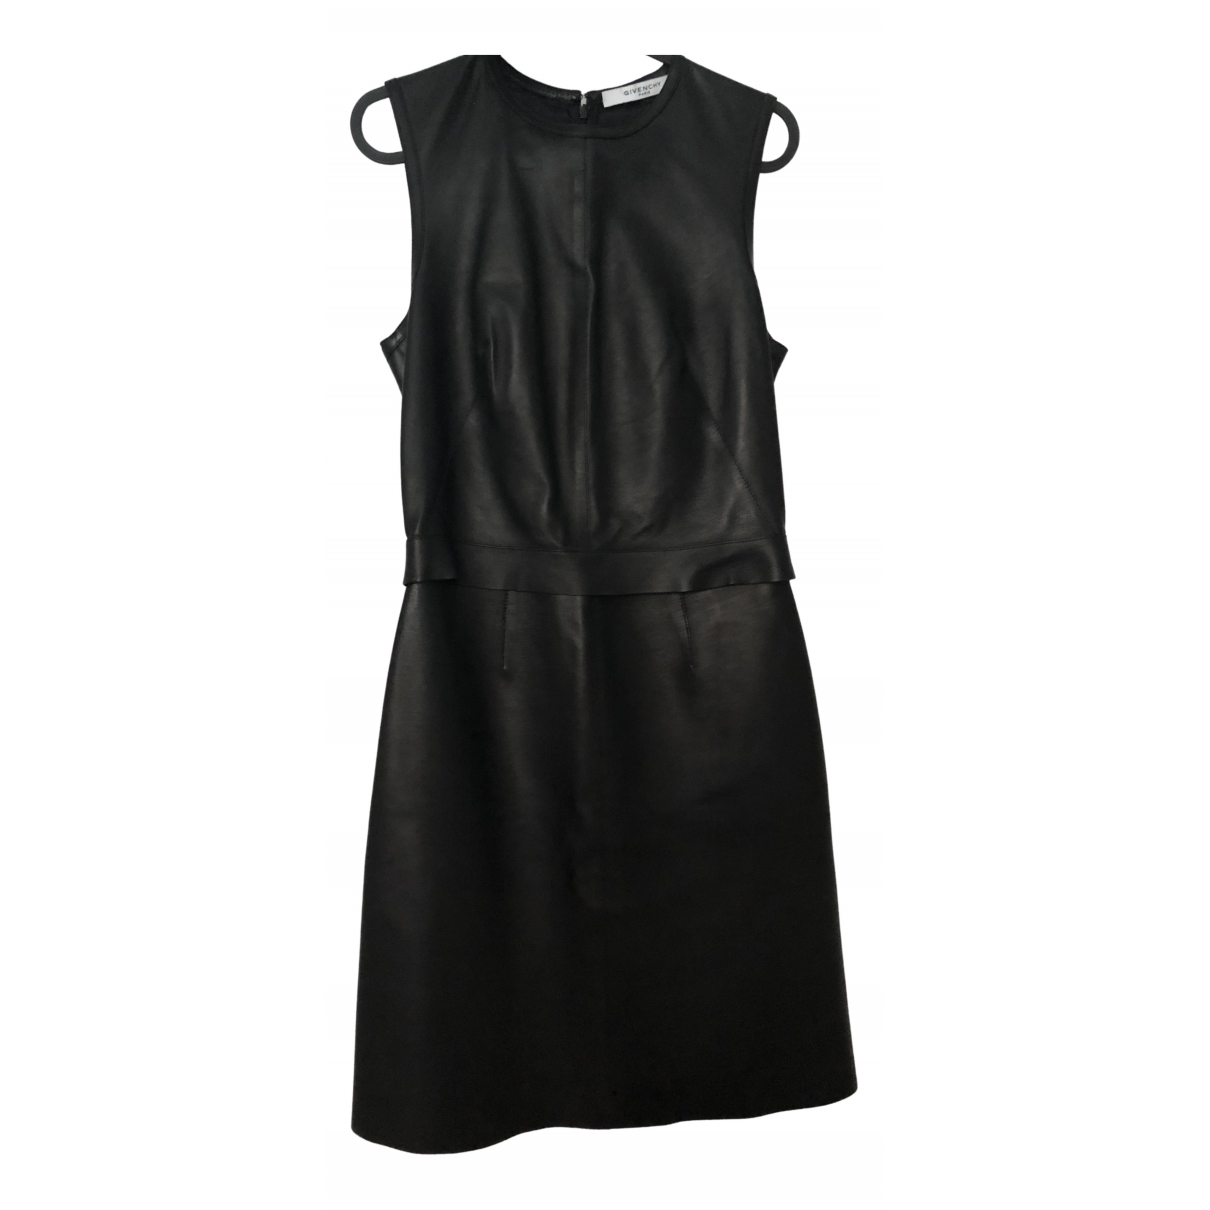 Givenchy N Black Leather dress for Women 38 FR